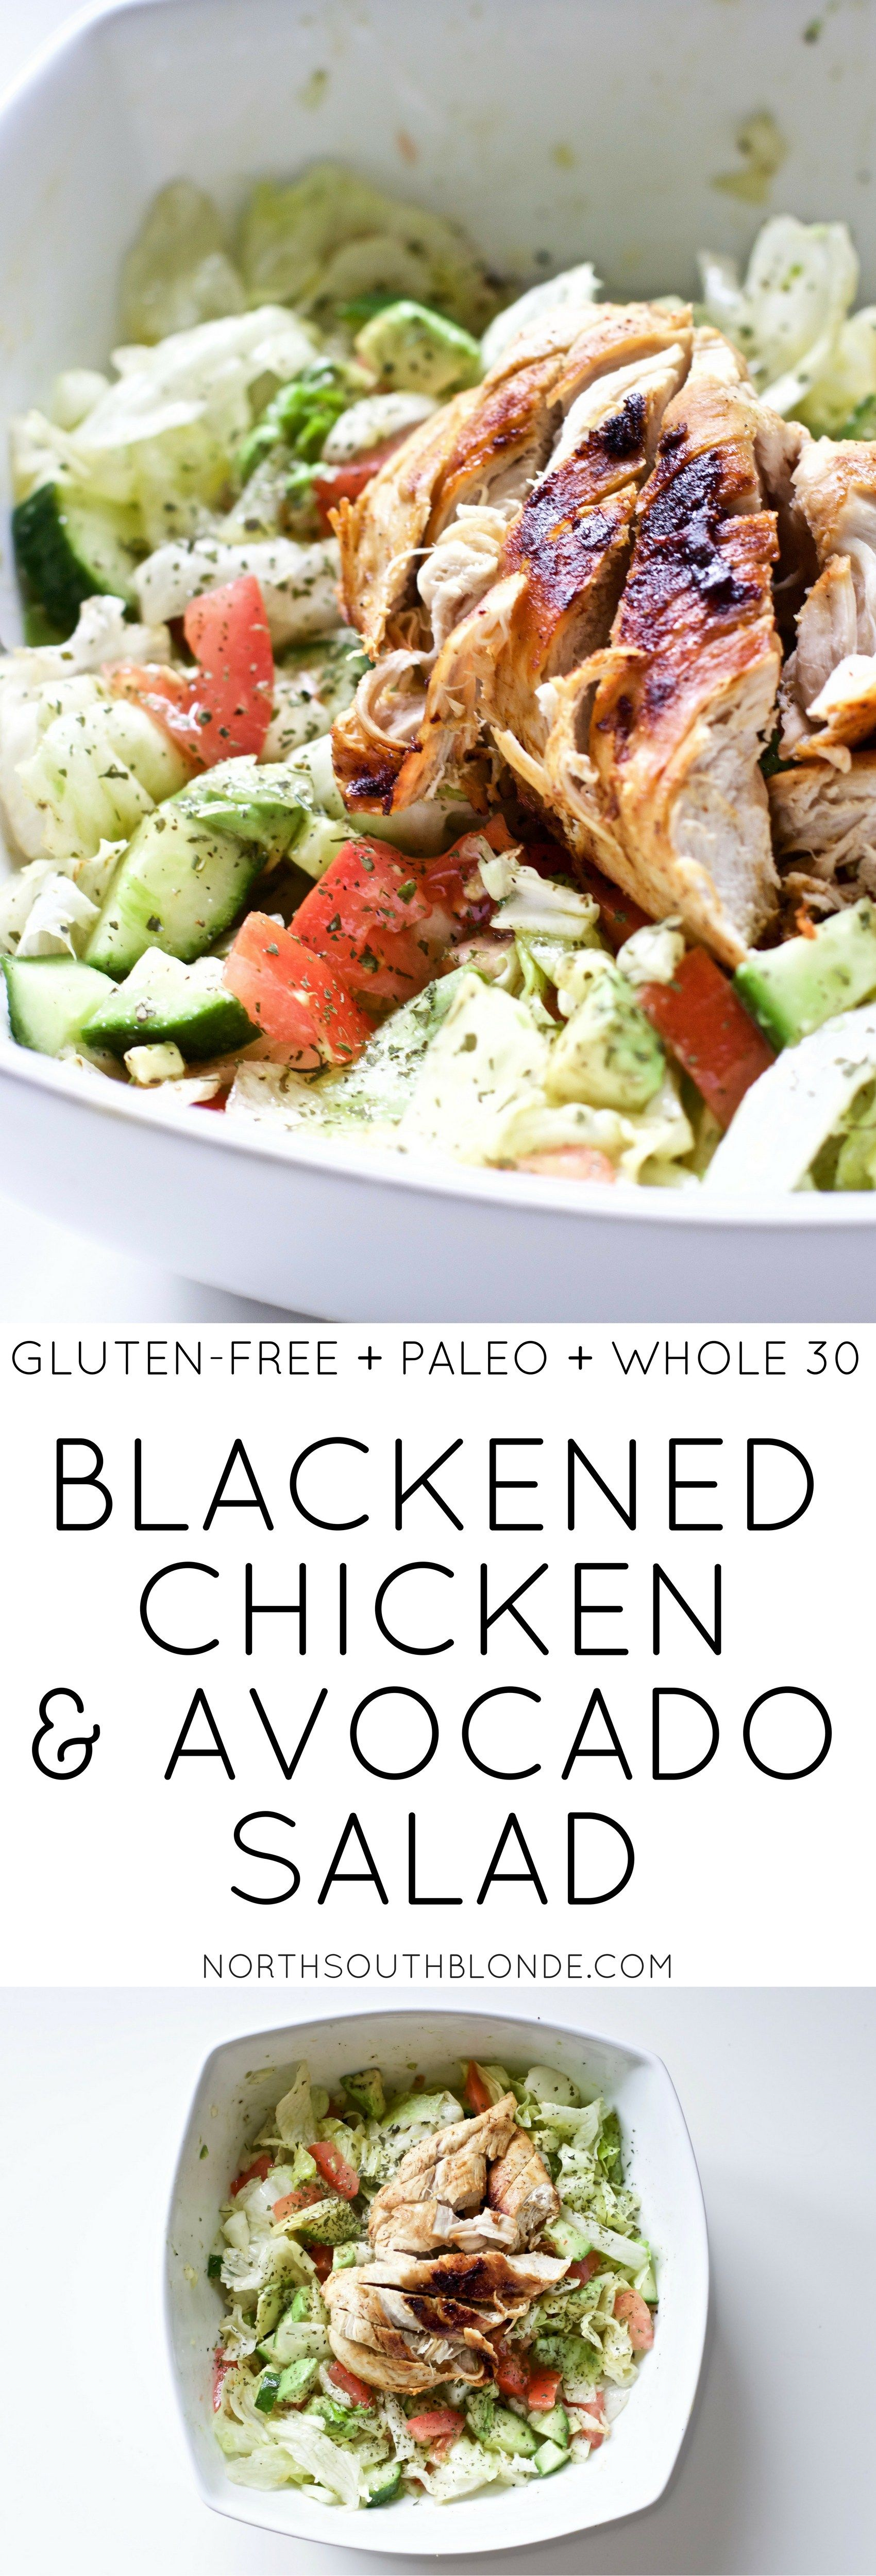 Blackened Chicken and Avocado Salad (GF, Keto, Paleo, Whole 30)